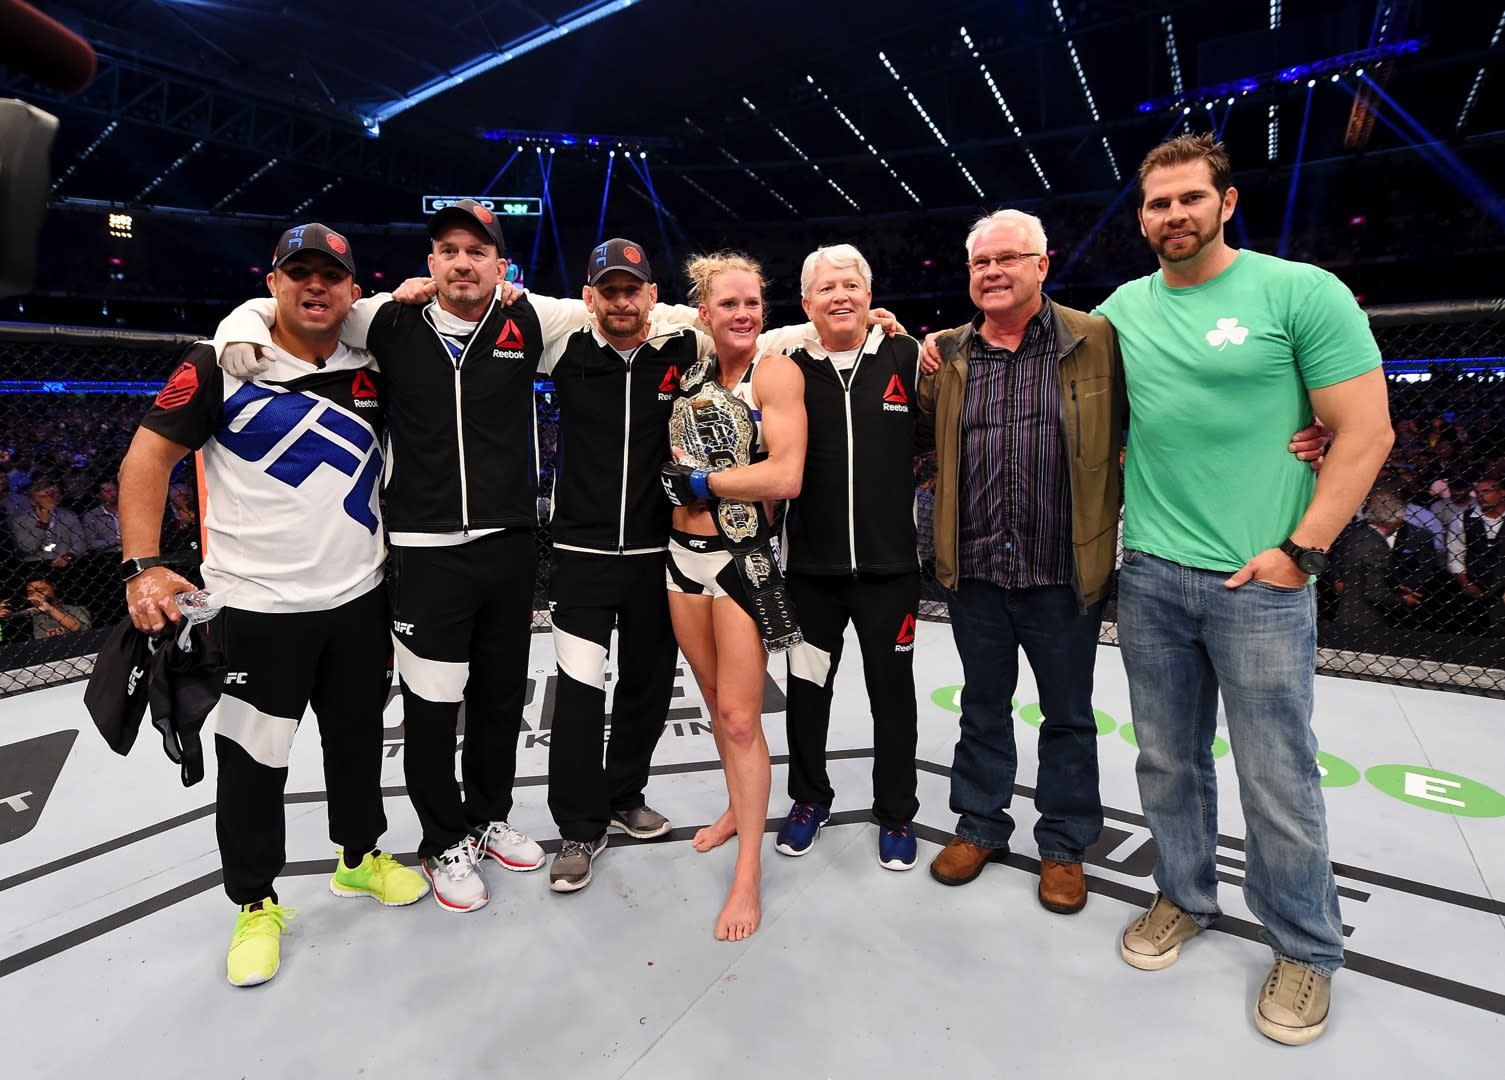 How Holly Holm's upset win over Ronda Rousey has affected her teammates